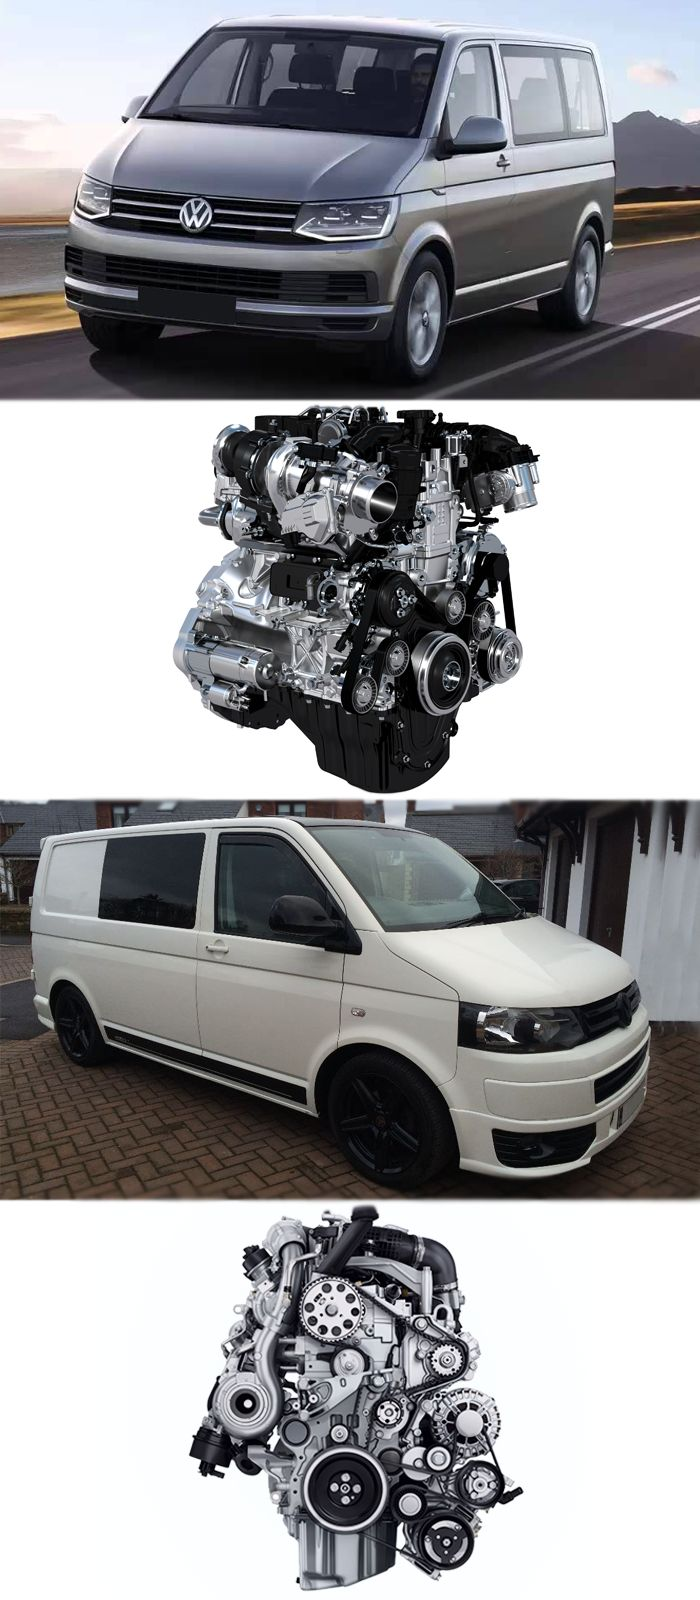 How #Volkswagen #Transporter #T6 Will Take On Rivals with New #Engines  For more details visit link:  http://www.enginefitted.co.uk/blog/category/volkswagen/